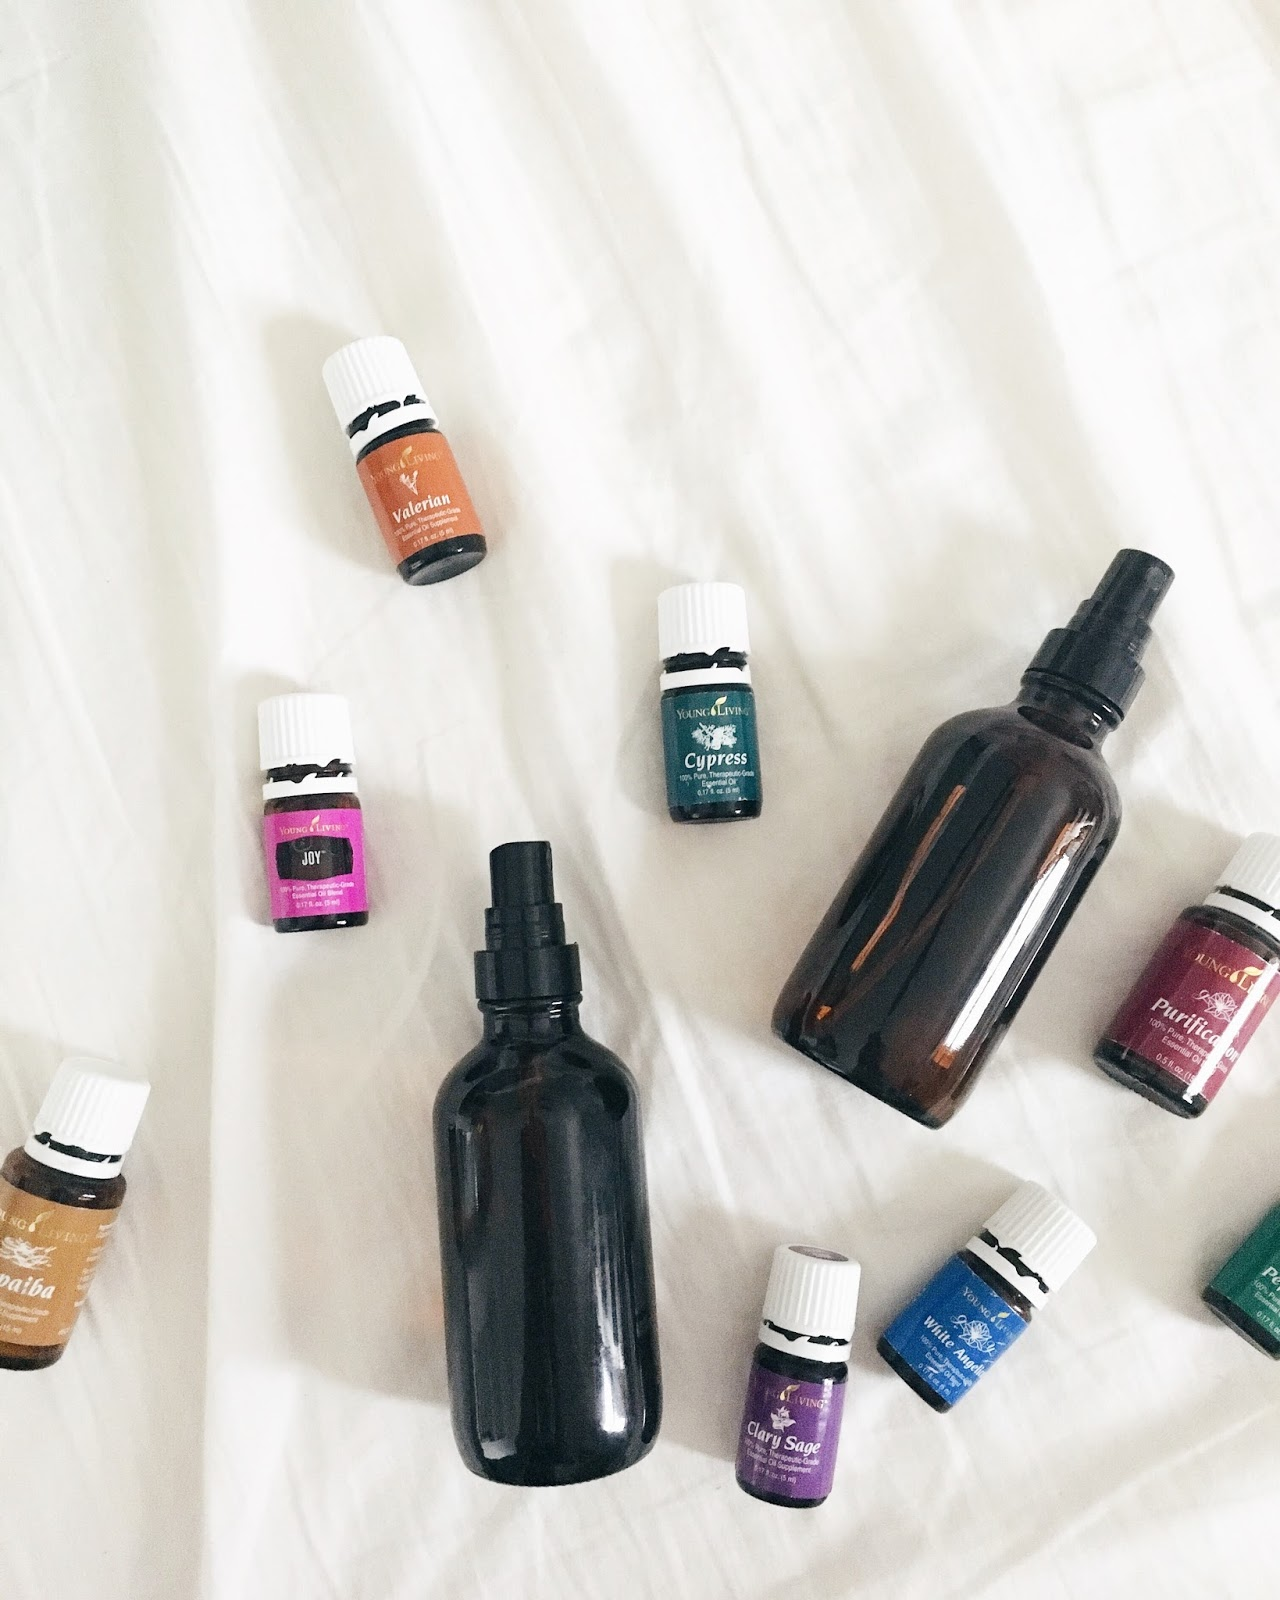 FRESH LINEN AND BED SPRAY:  + 10 drops lavender + 6 drops roman chamomile  + Top off with distilled water  Lightly mist bed sheets and pillows.   REFRESHING ROOM SPRAY:  + 5 drops rosemary + 5 drops orange + 5 drops peppermint + Top off with distilled water